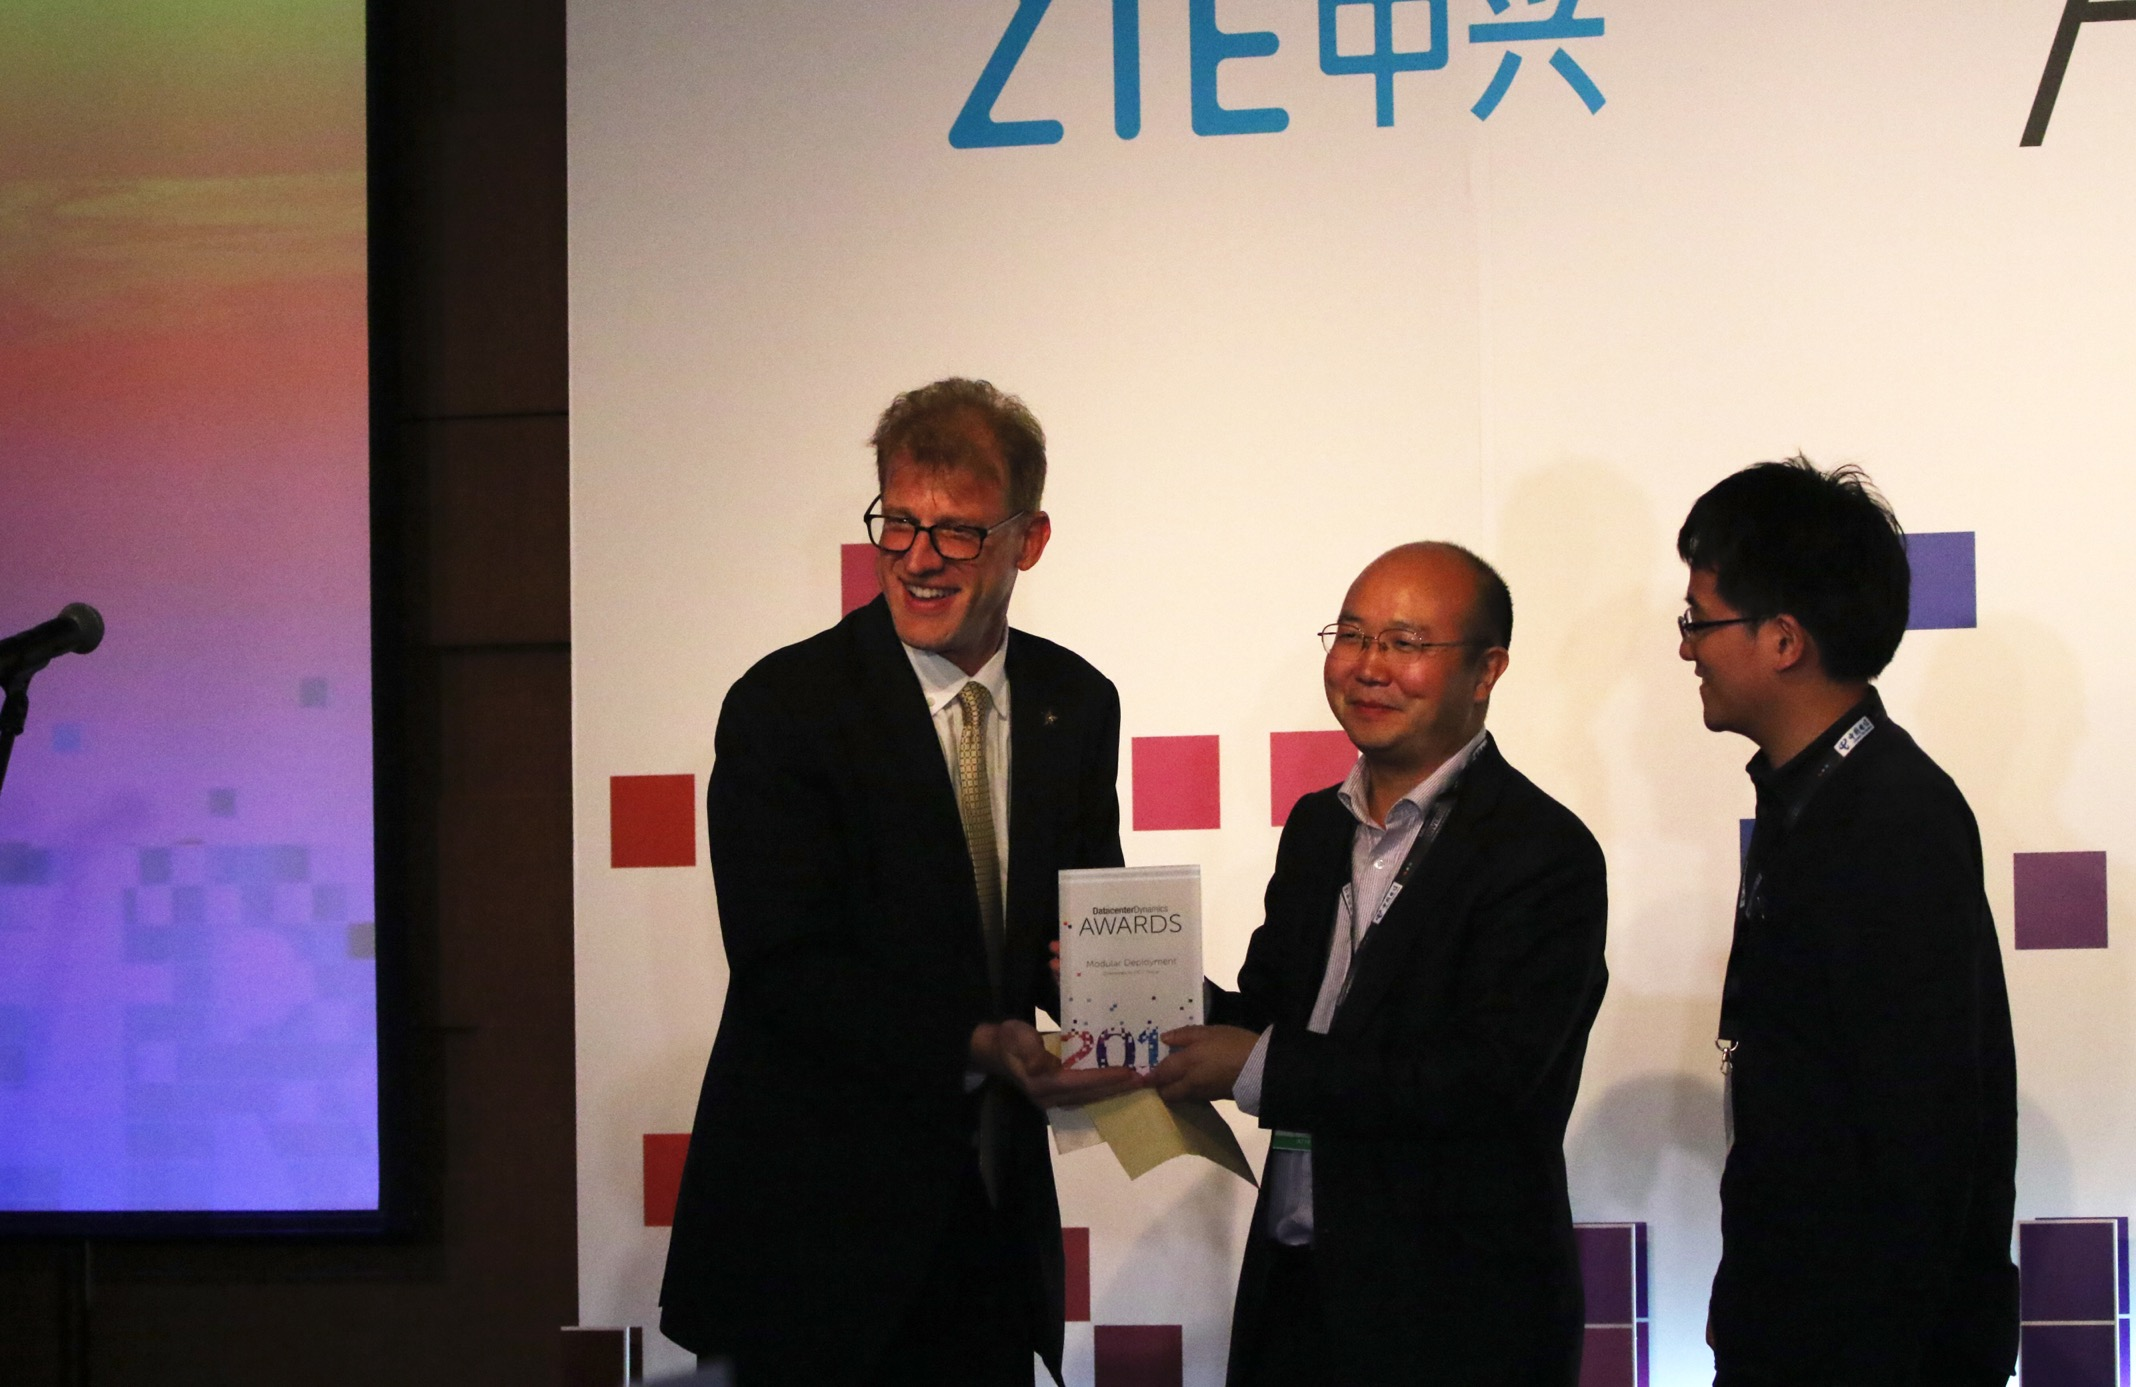 zte-awarded-the-dcd-awards